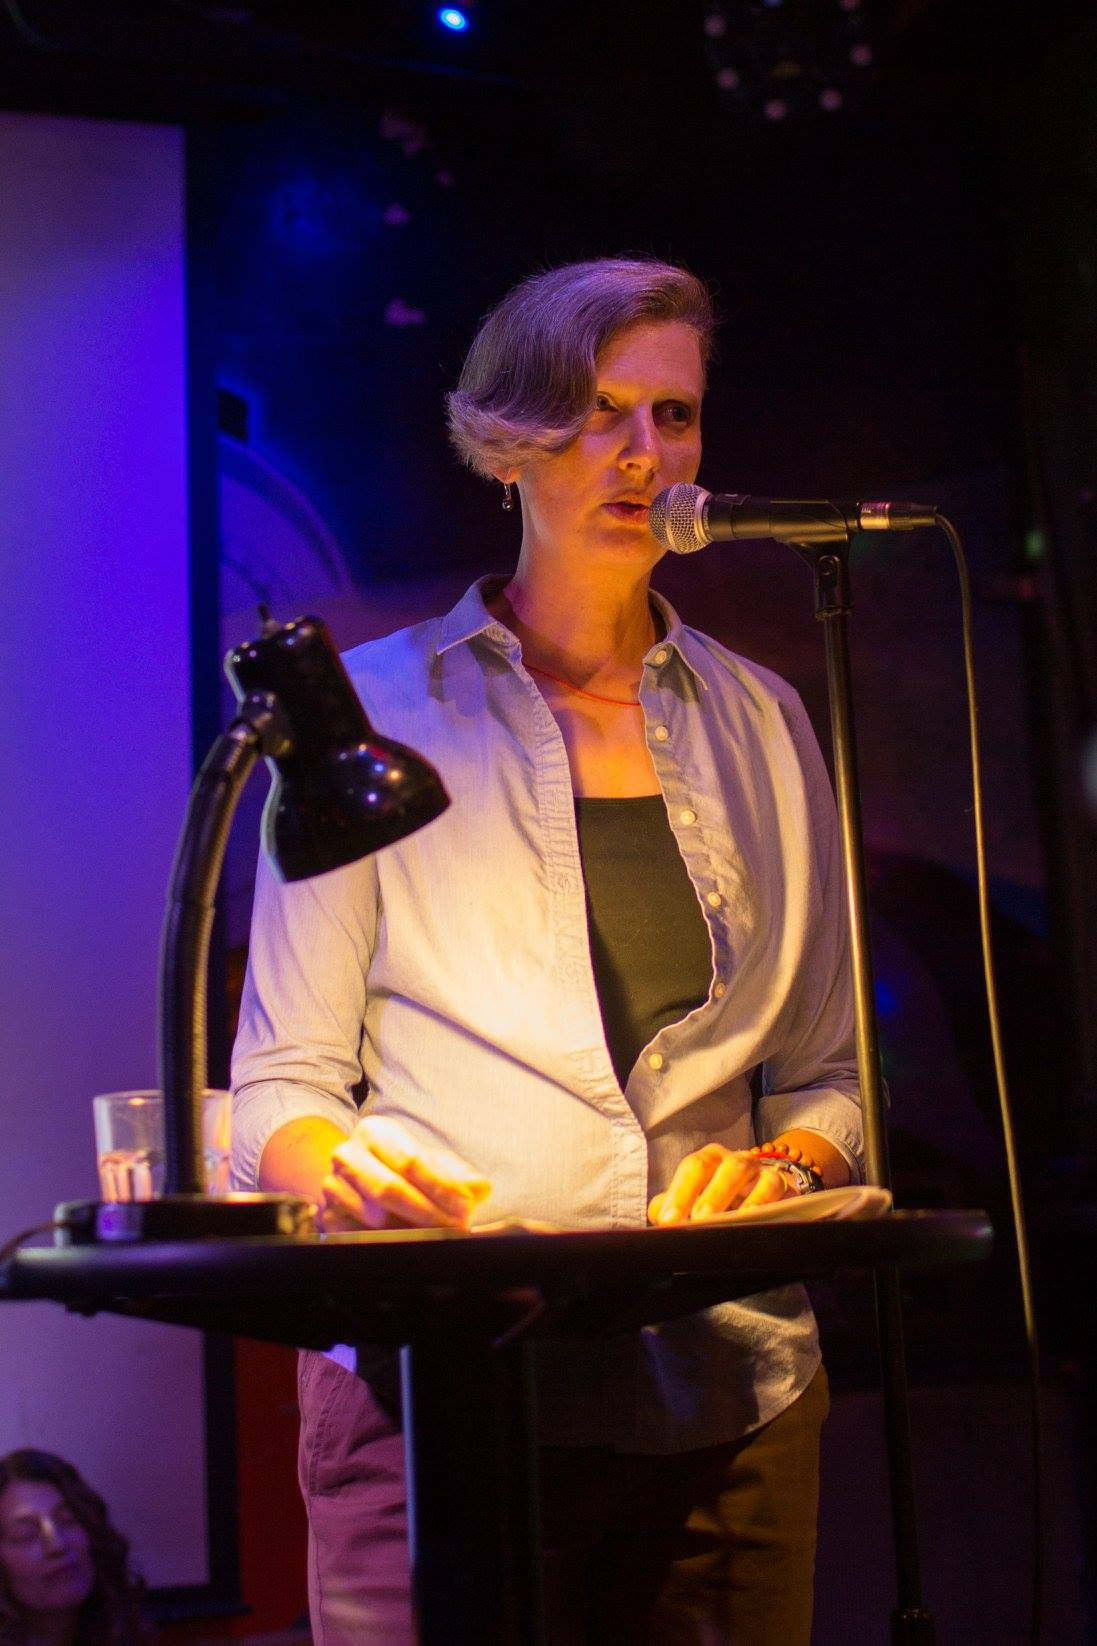 woman with short blonde hair standing at a microphone in a room with a darkened background